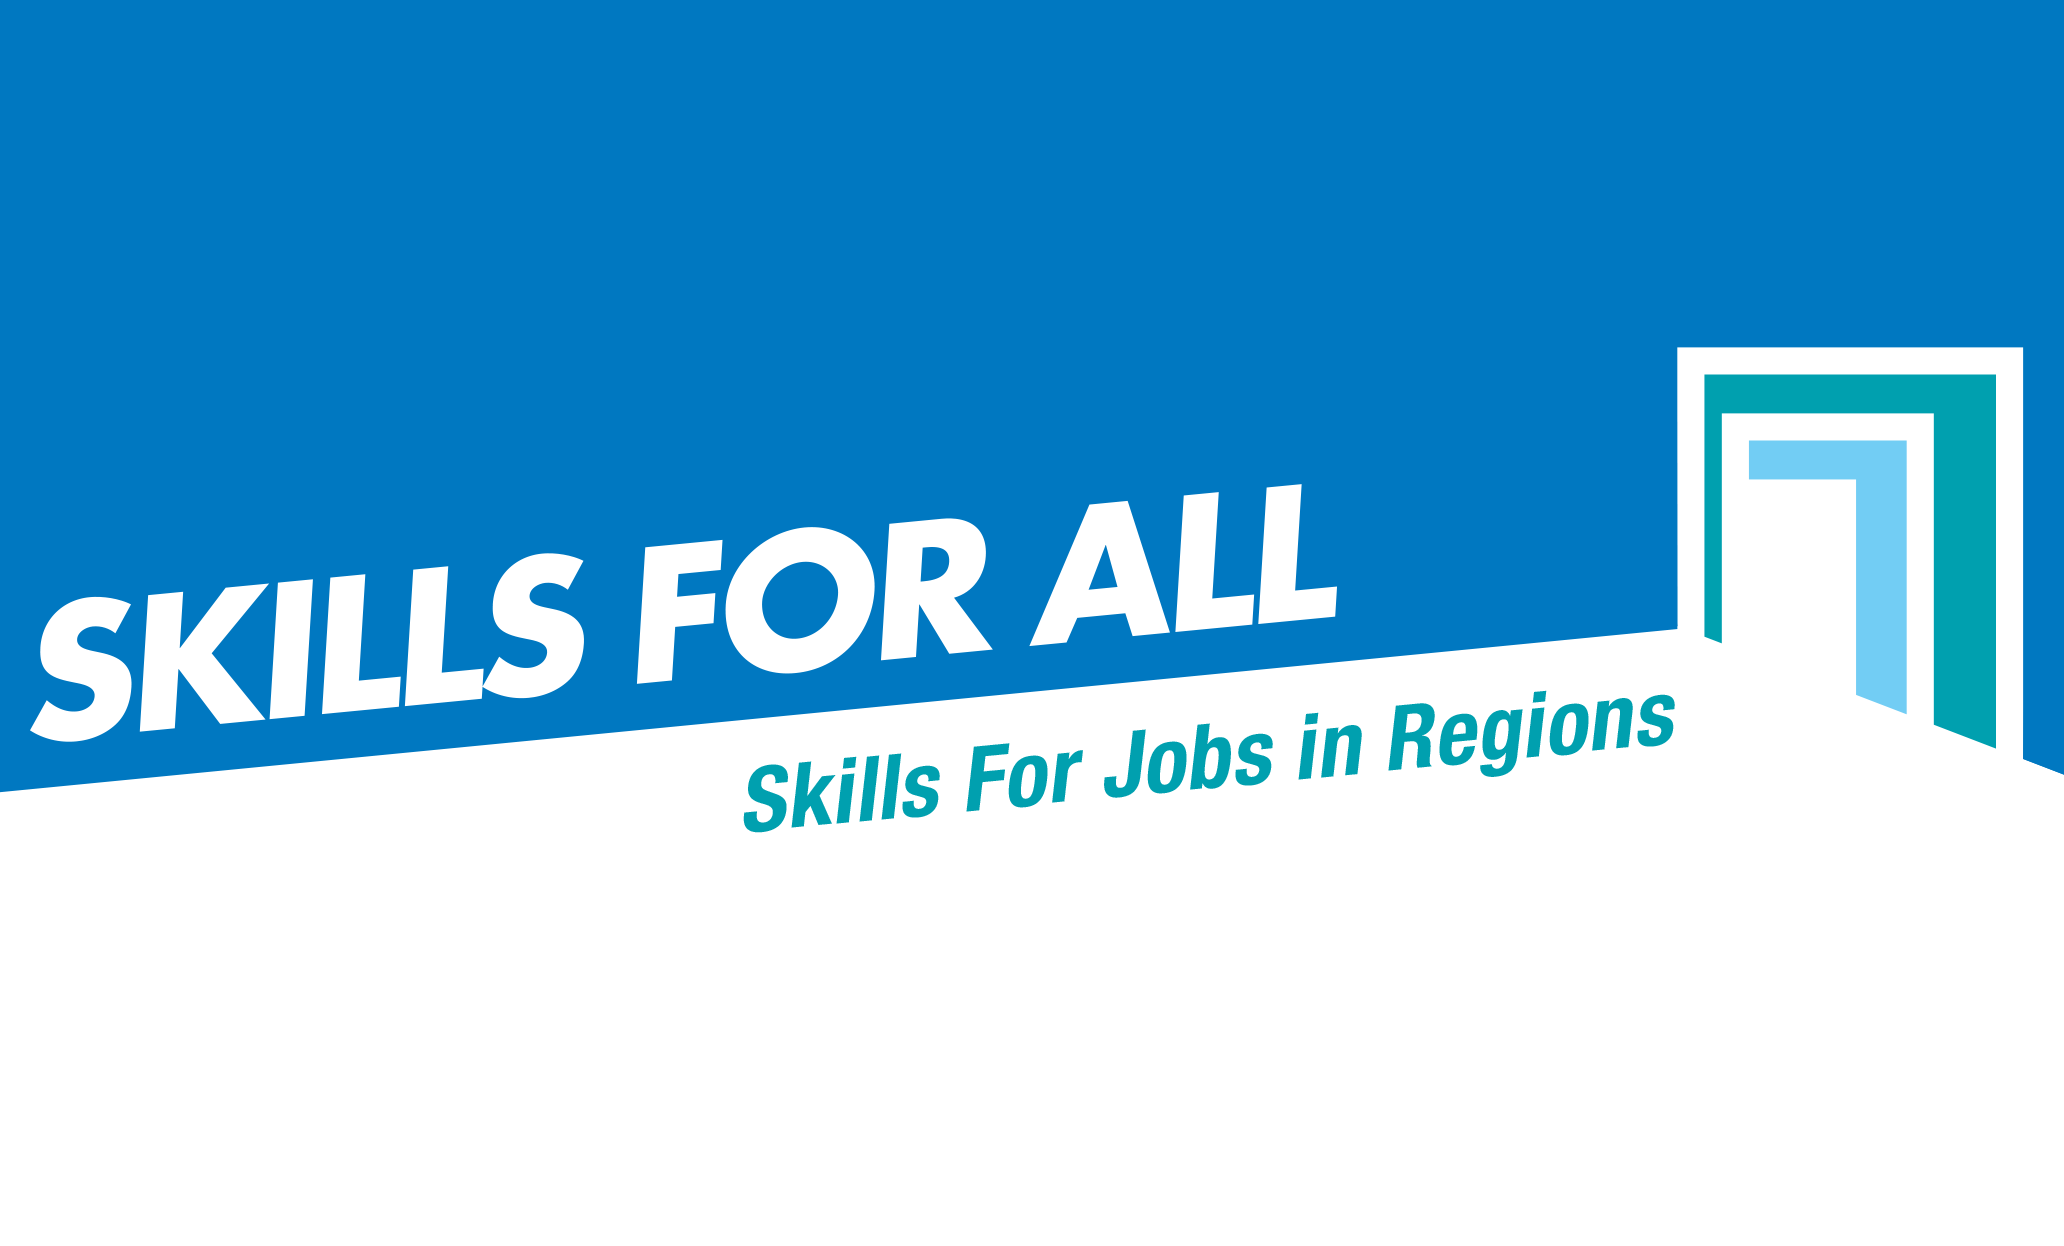 $9.92m to help more than 9,000 people train, connect to local jobs